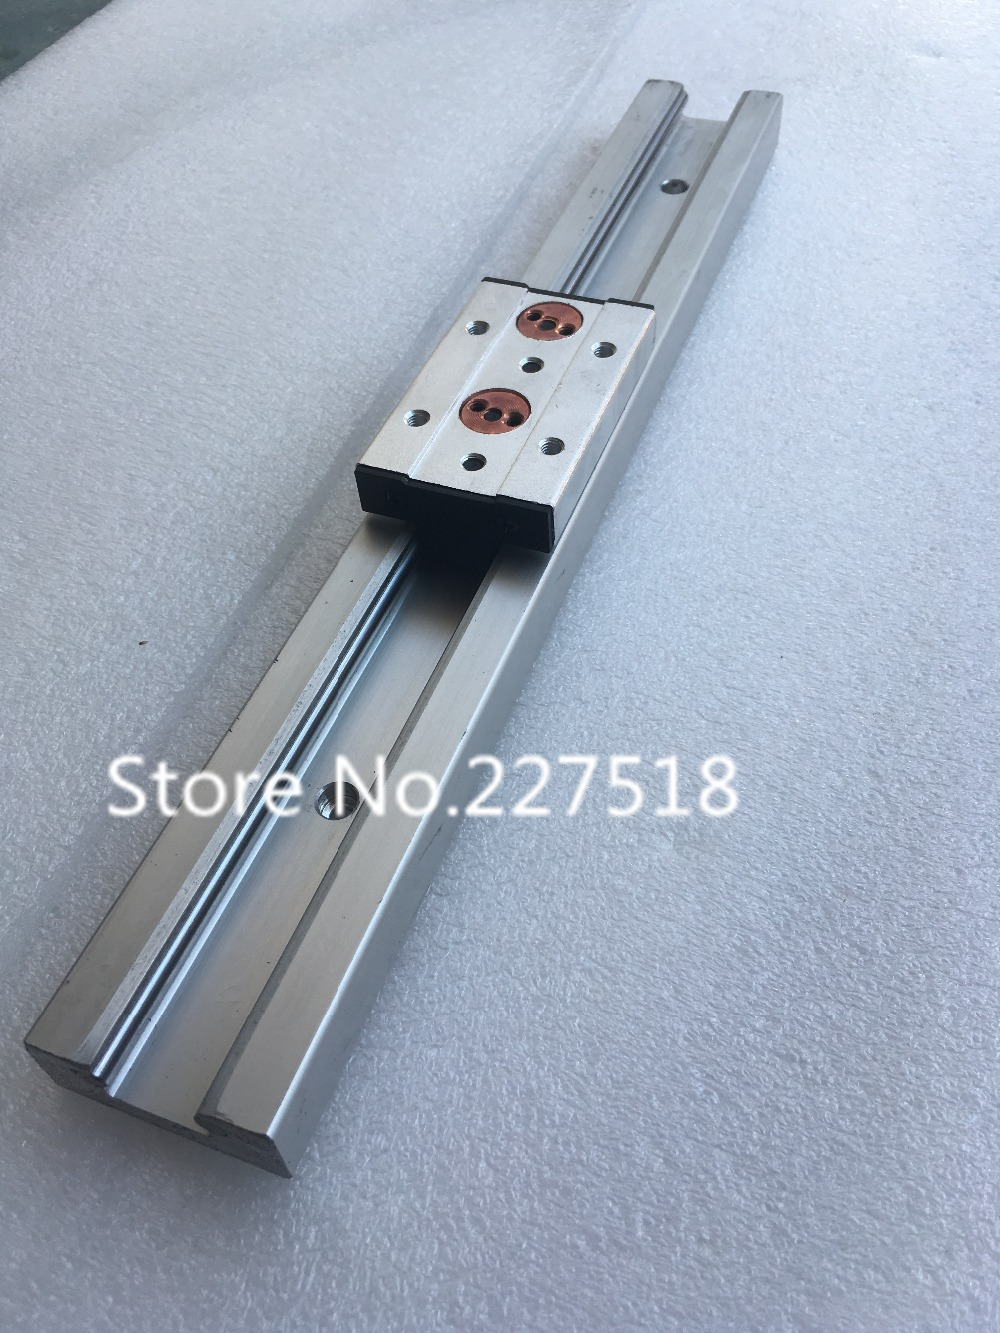 1pcs Double axis roller linear guide SGR15 L1000mm +1pcs SGB15UU block multi axis core linear Motion slide rail auminum guide modern 20w led lamp bedroom living room stair kitchen ceiling light fixtures black white iron acrylic indoor home lighting 220v